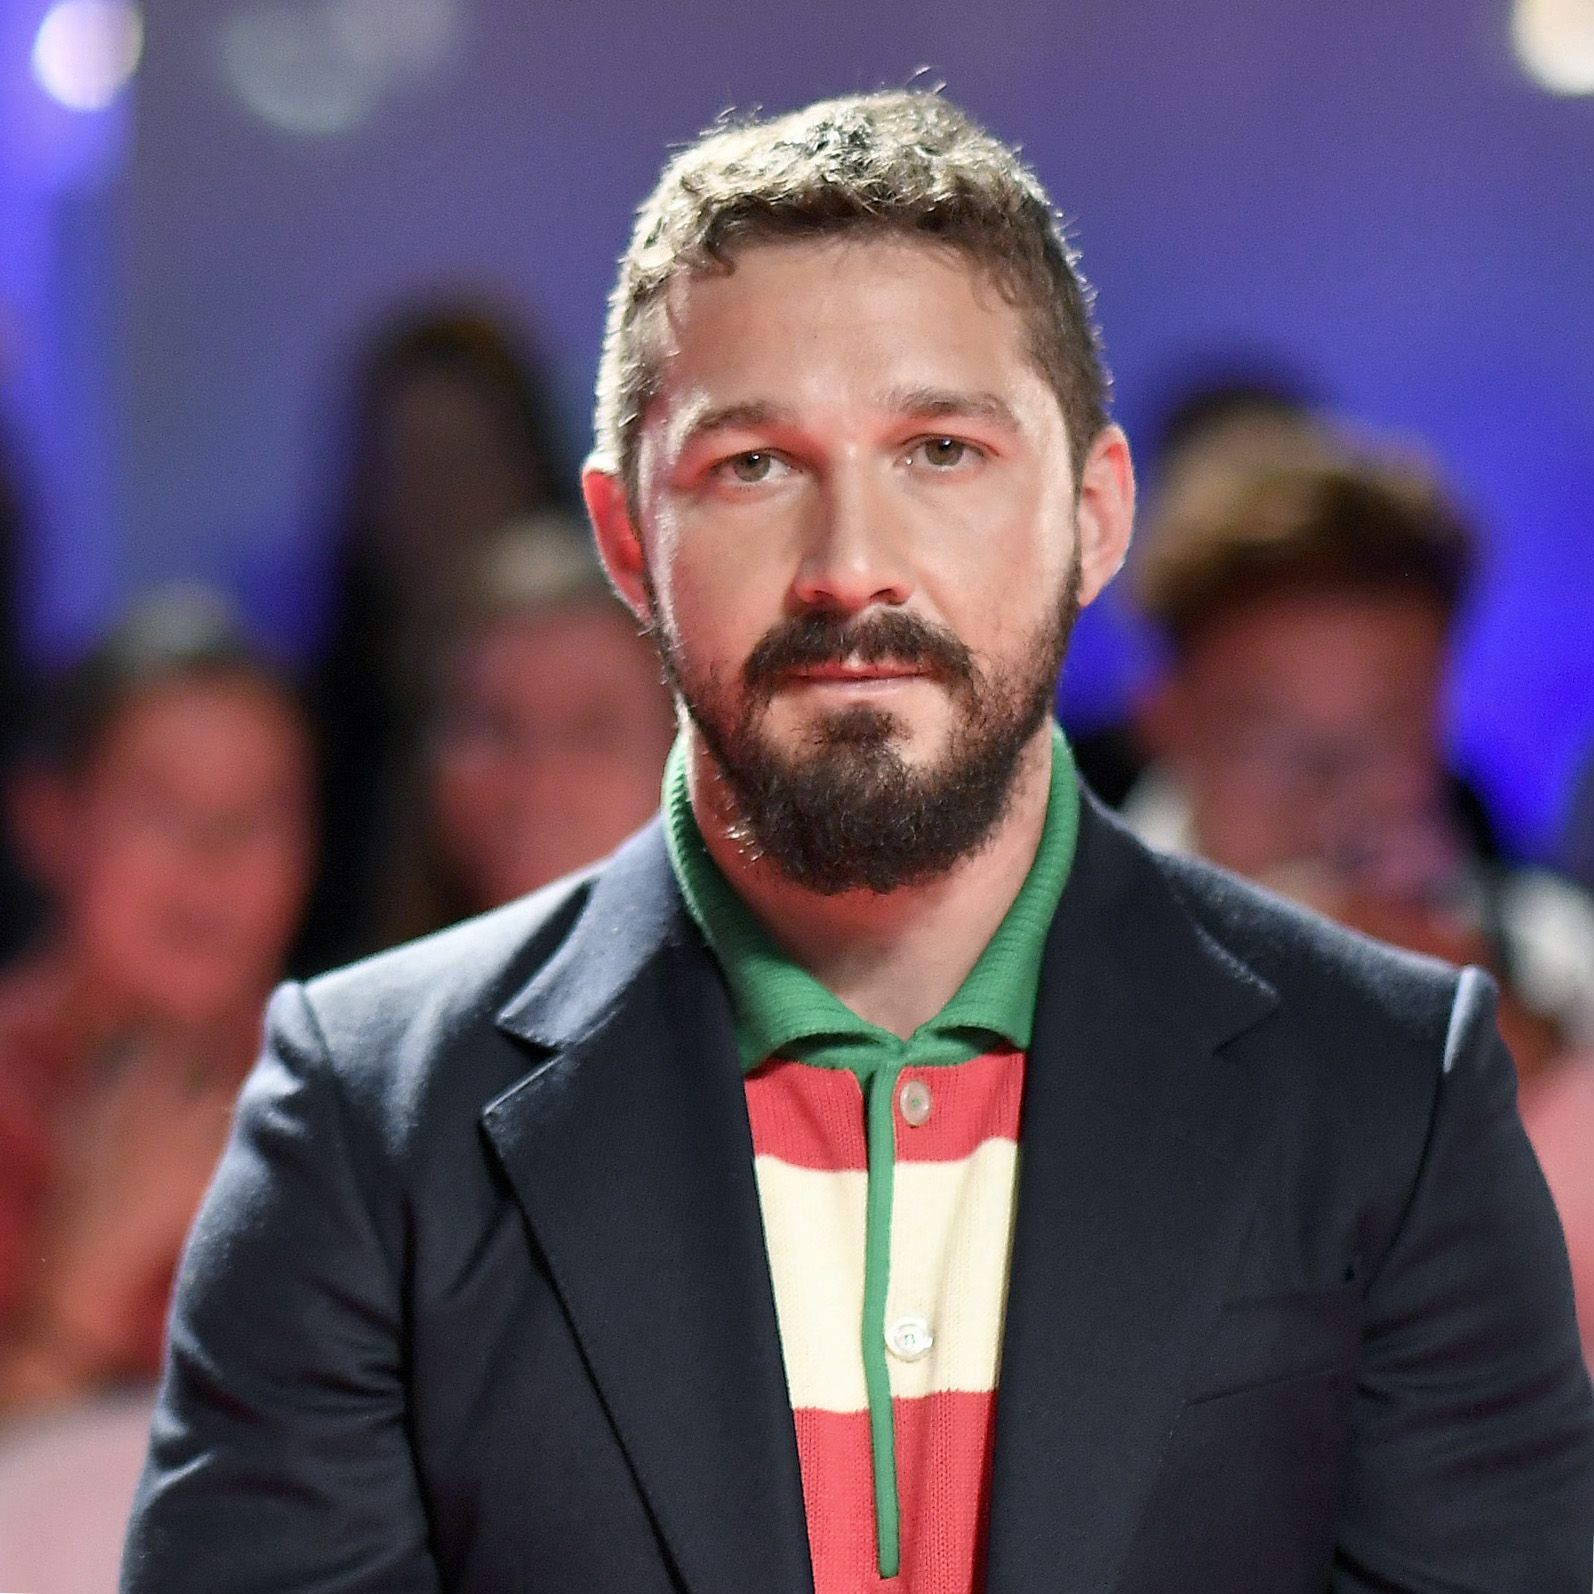 Shia LaBeouf reveals he once wrestled Tom Hardy while naked